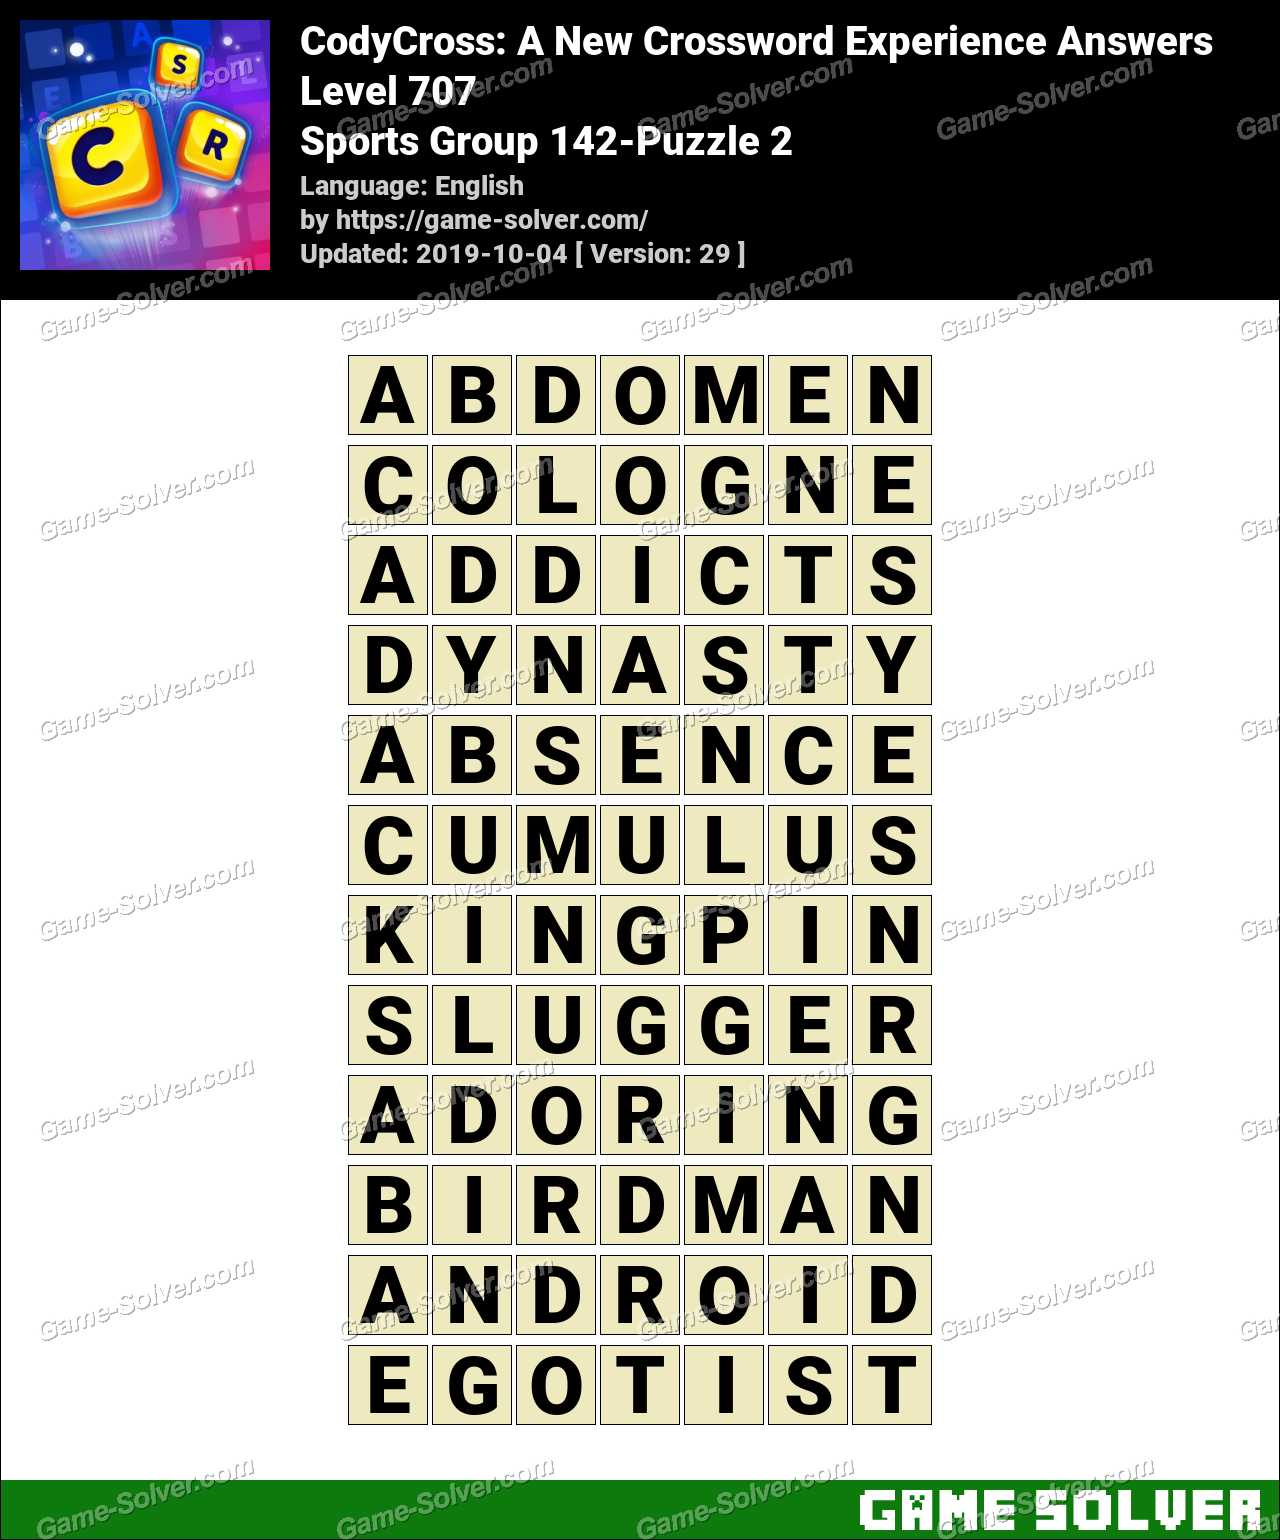 CodyCross Sports Group 142-Puzzle 2 Answers